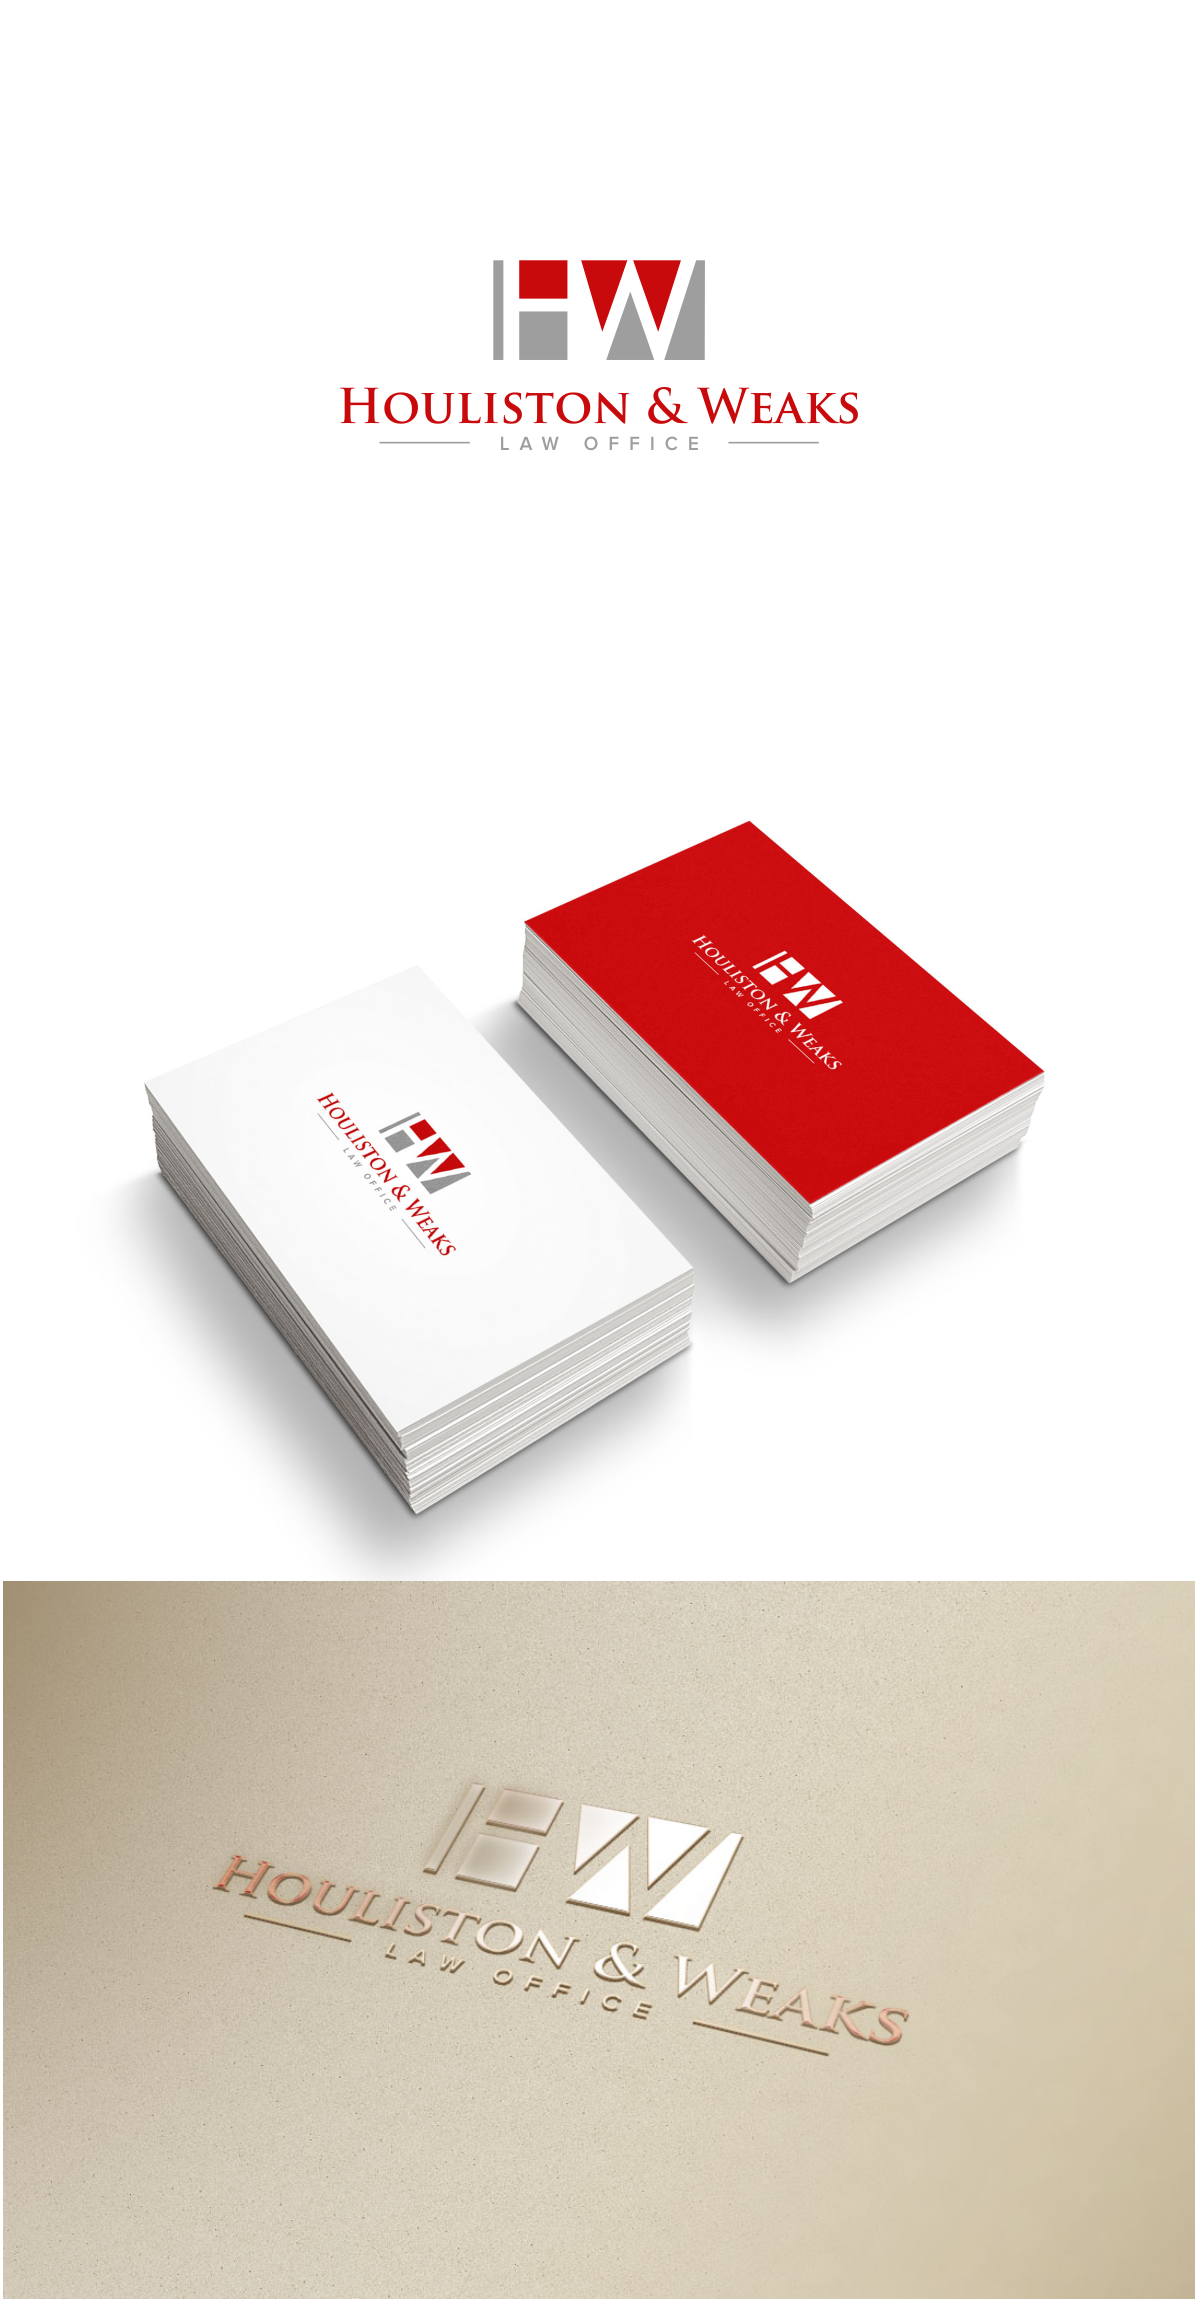 Law firm designs